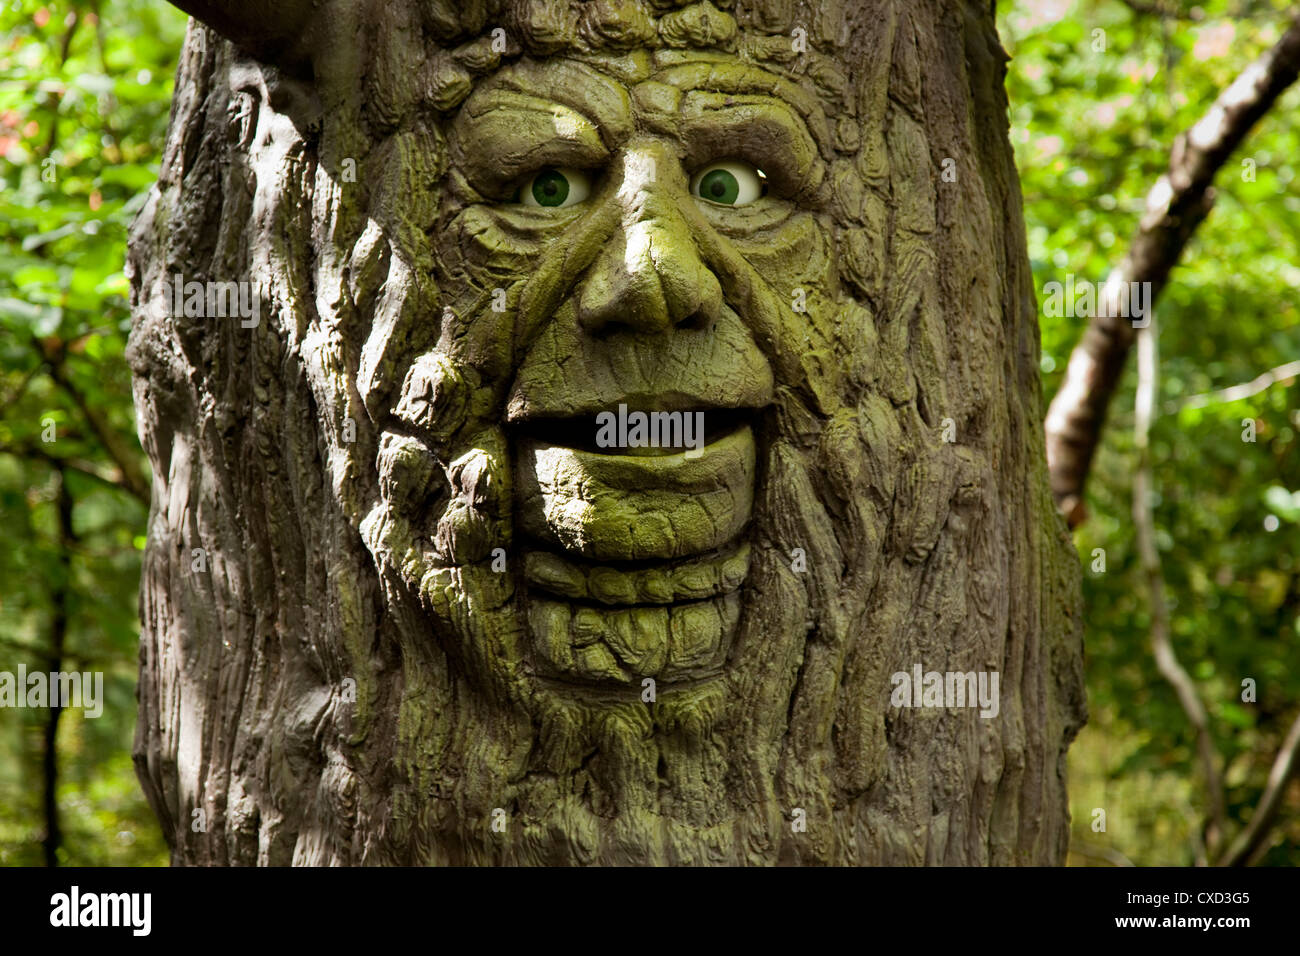 Talking Tree man at King Arthur's labyrinth The bards' quest tree - Stock Image